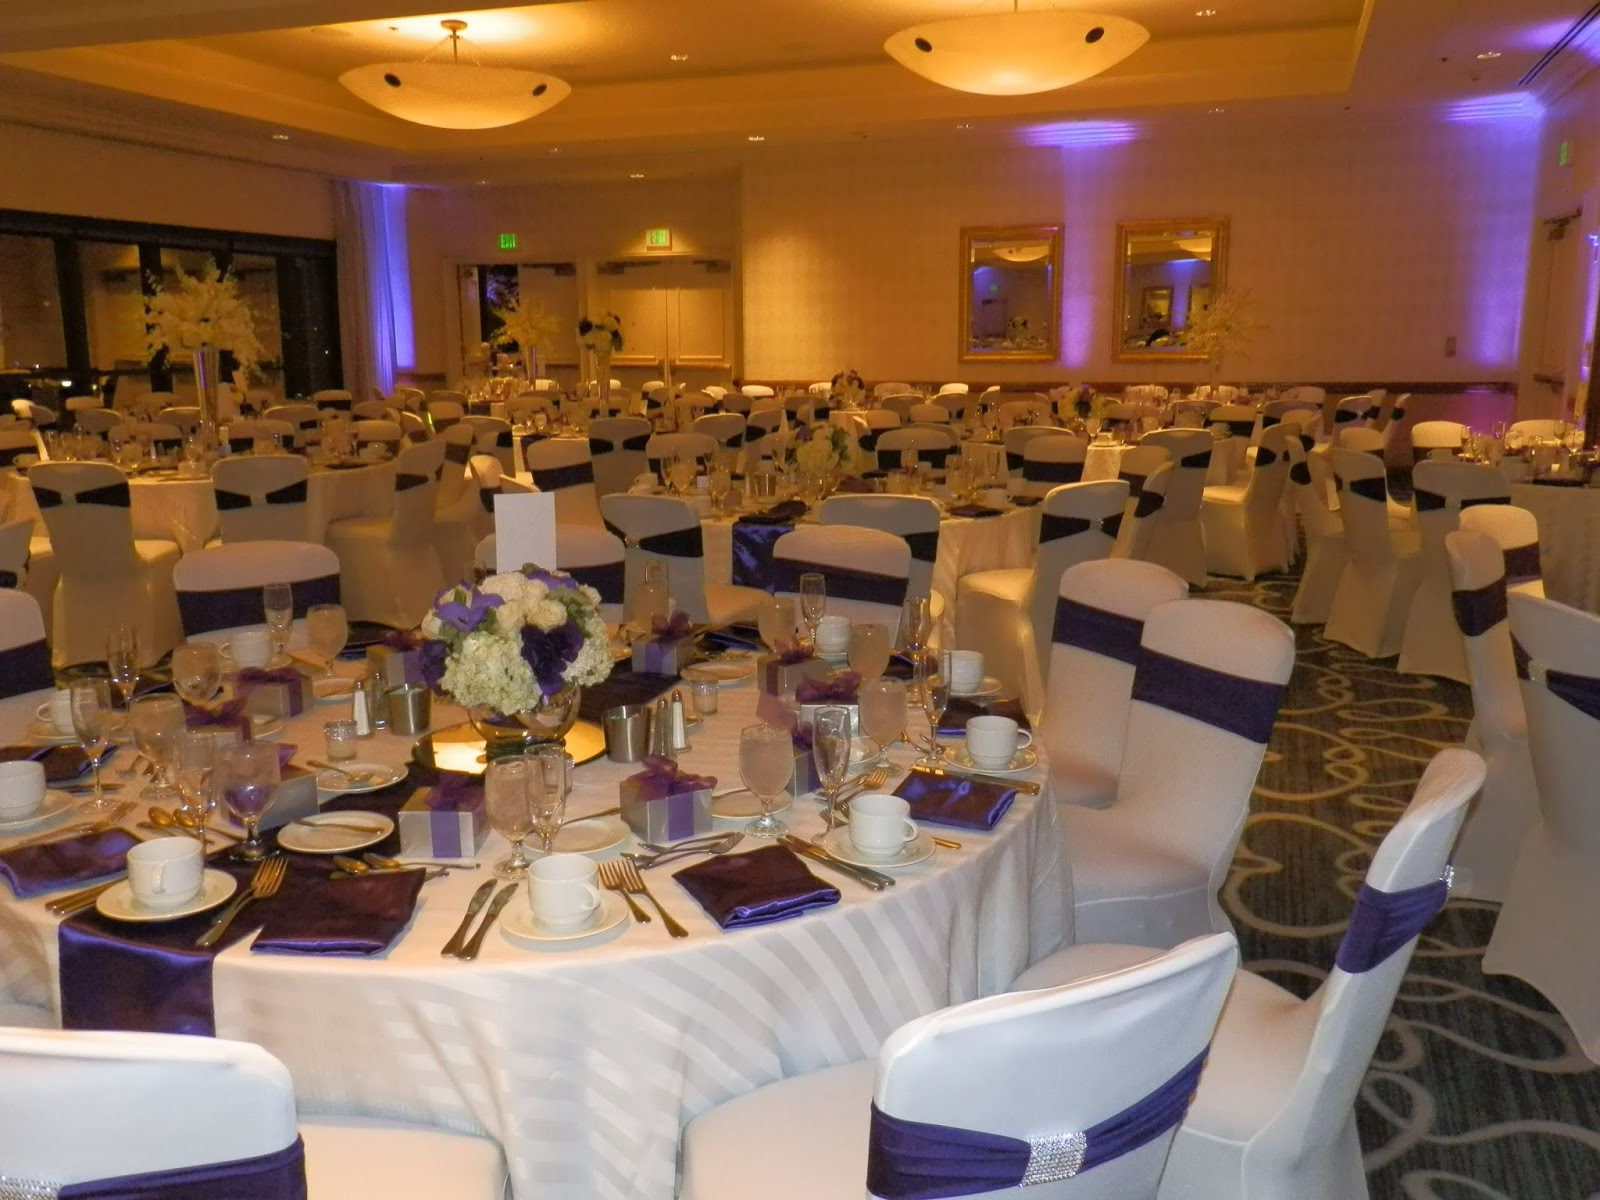 Chair Cover Rental Tampa Covers To Buy Cheap Sbd Events The Event Specialist Angela And Steven